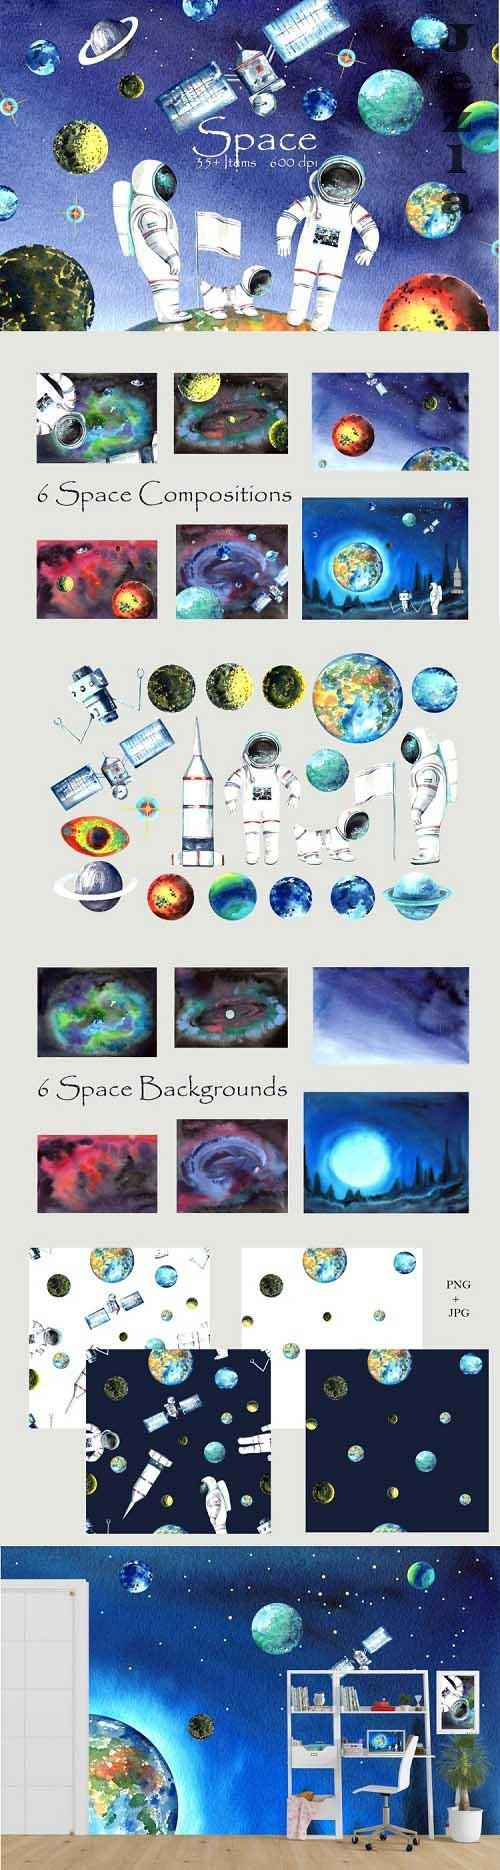 Space Clipart - 1241274